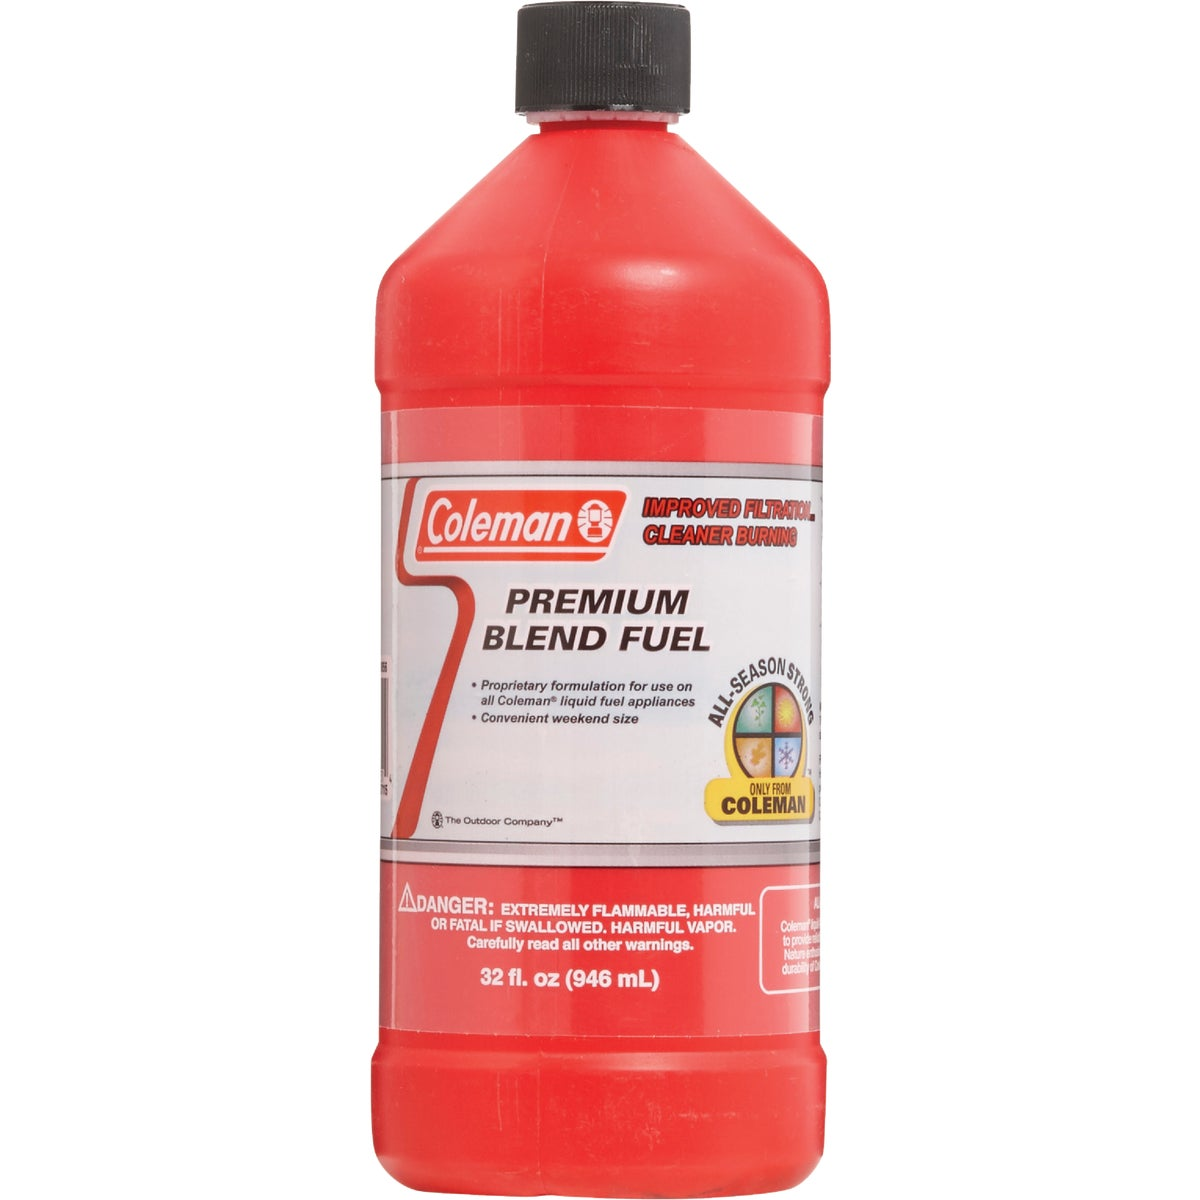 1 QUART LIQUID FUEL